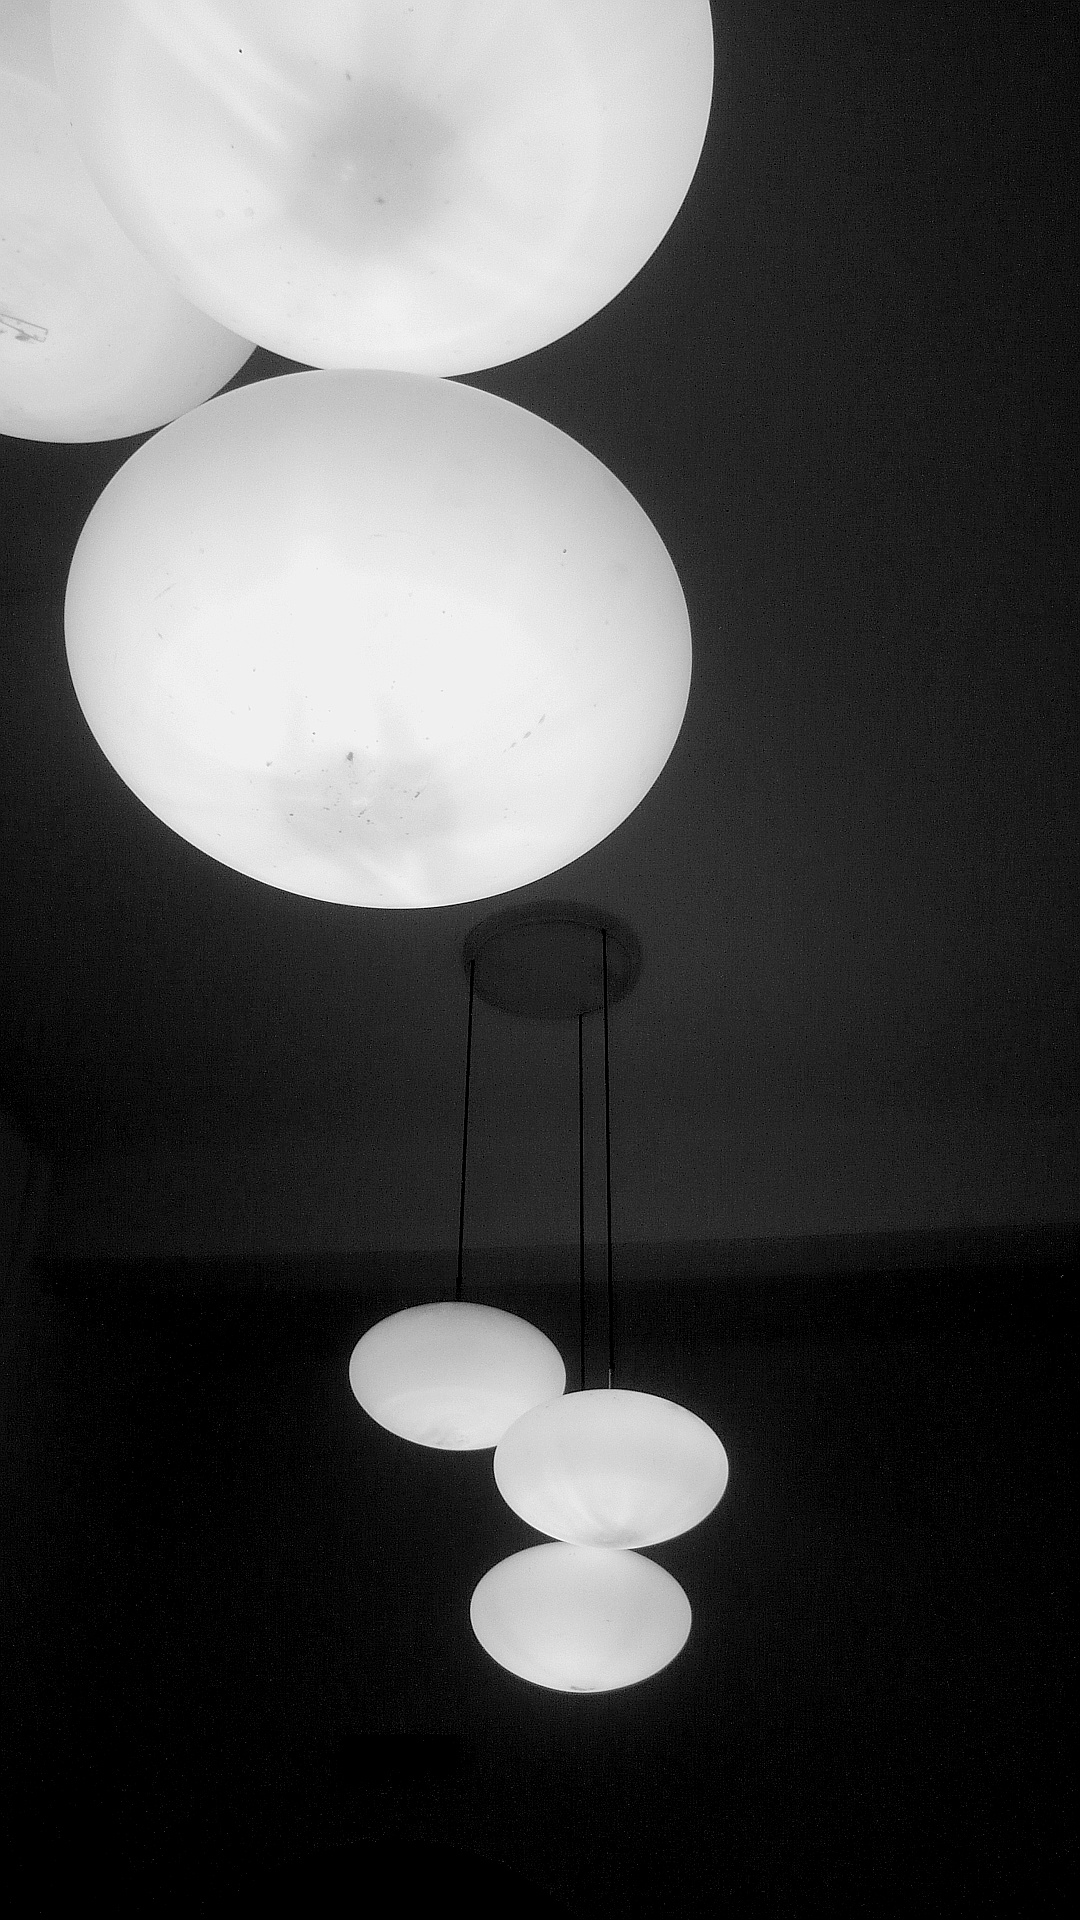 Lamps by Gernot Schwarz